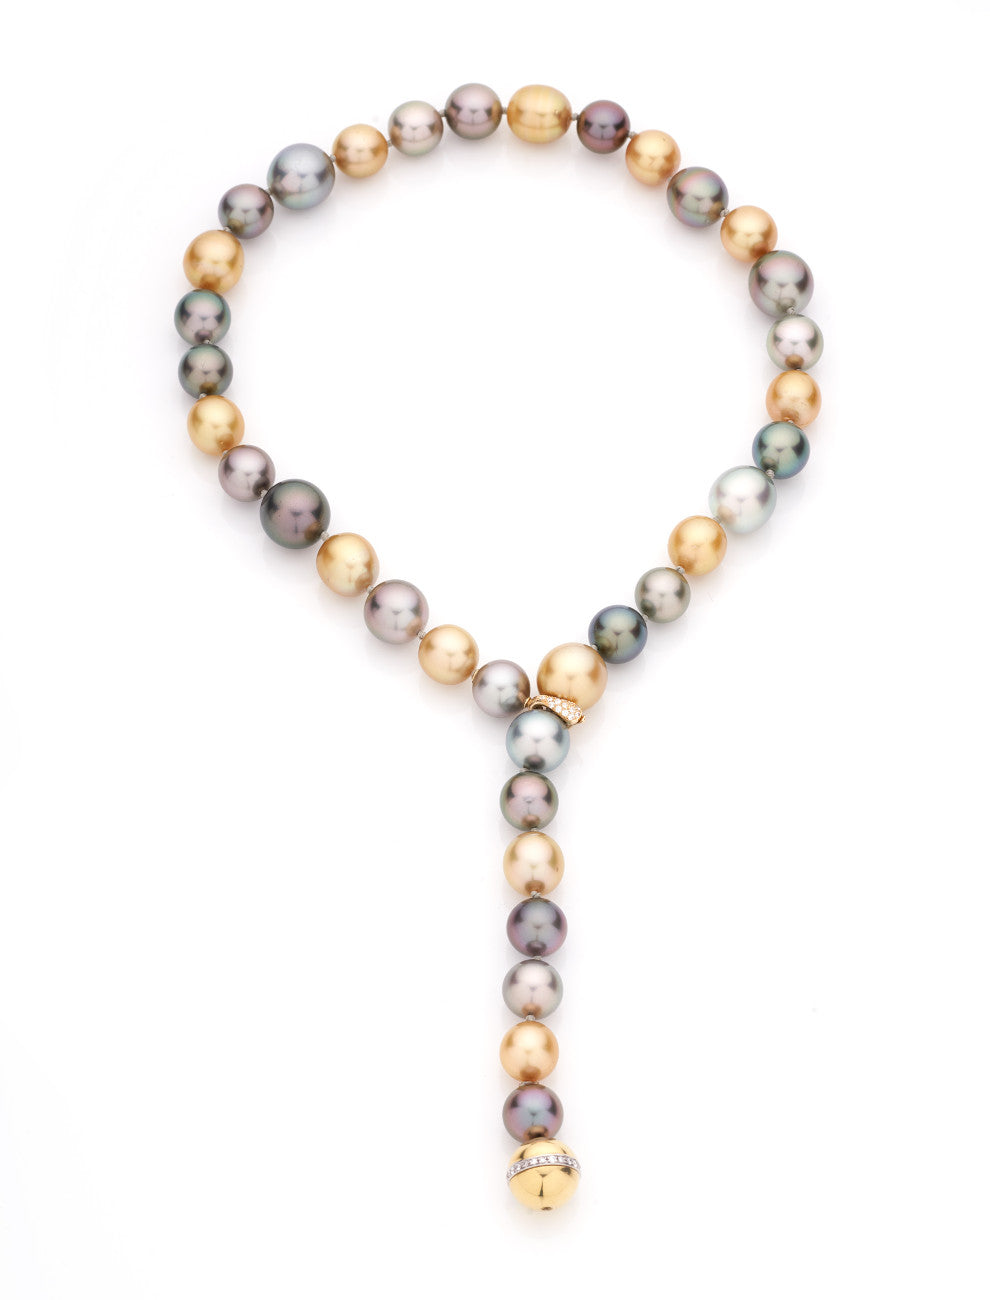 NECKLACE TAHITIAN PEARL - 22